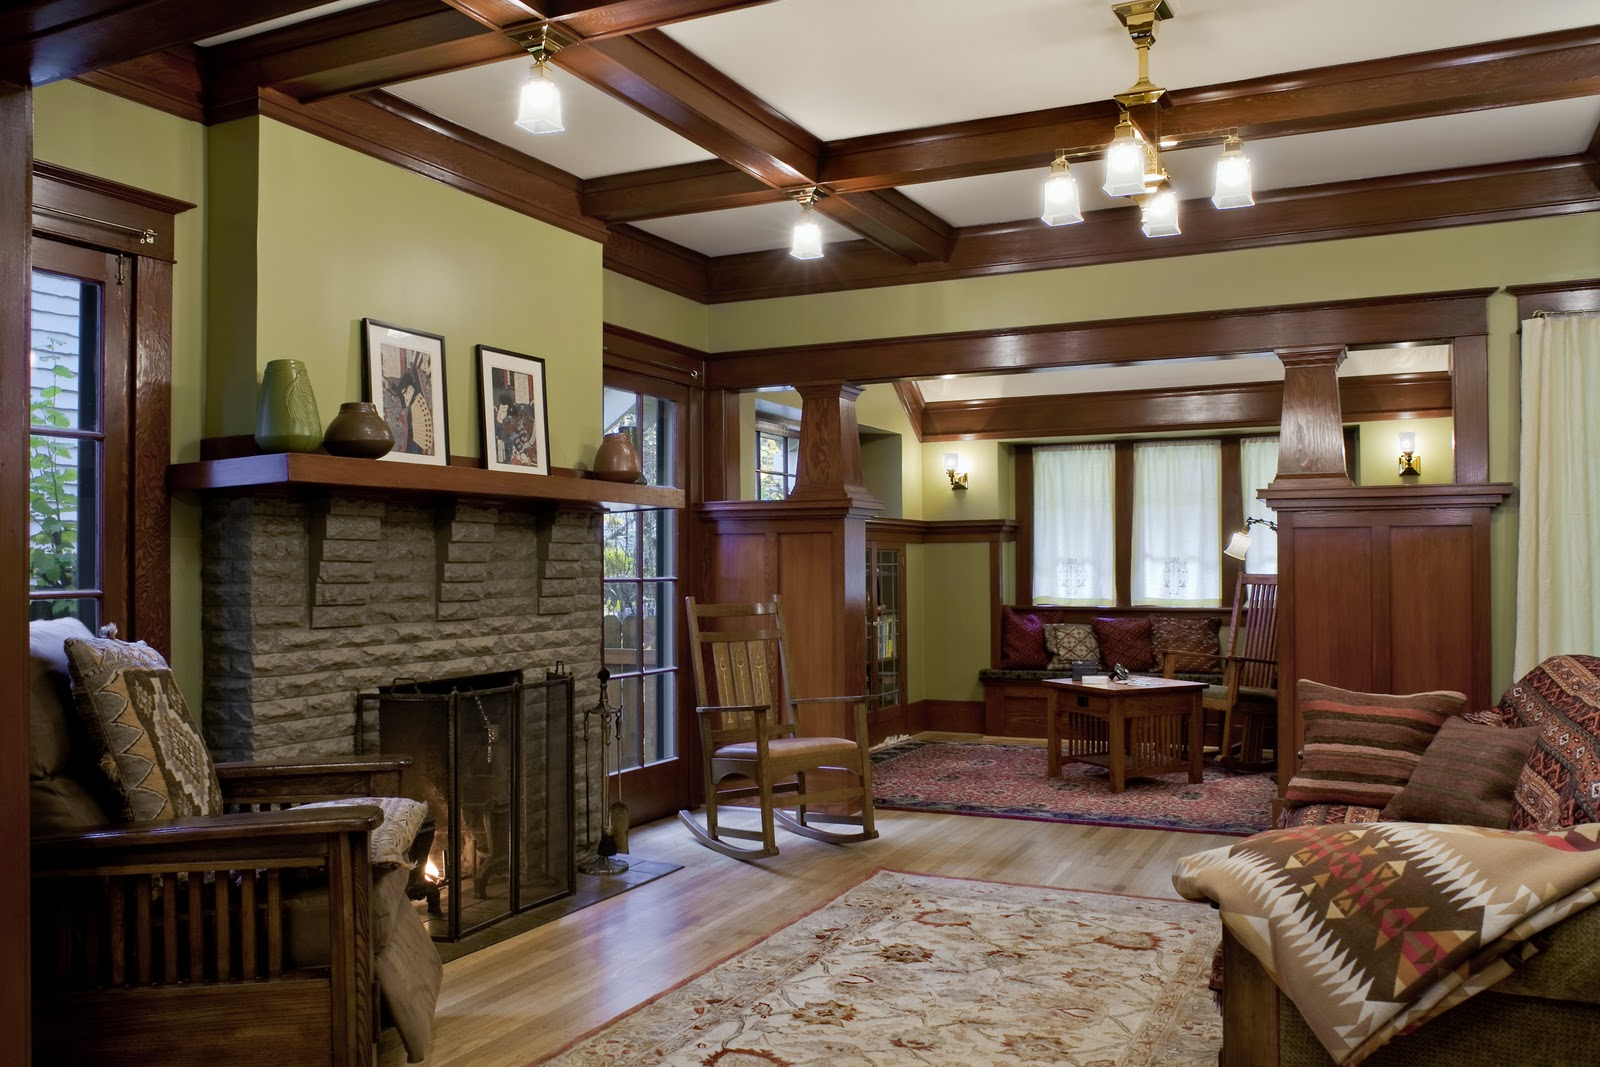 laurelhurst 1912 craftsman living room after hooked on houses. Black Bedroom Furniture Sets. Home Design Ideas